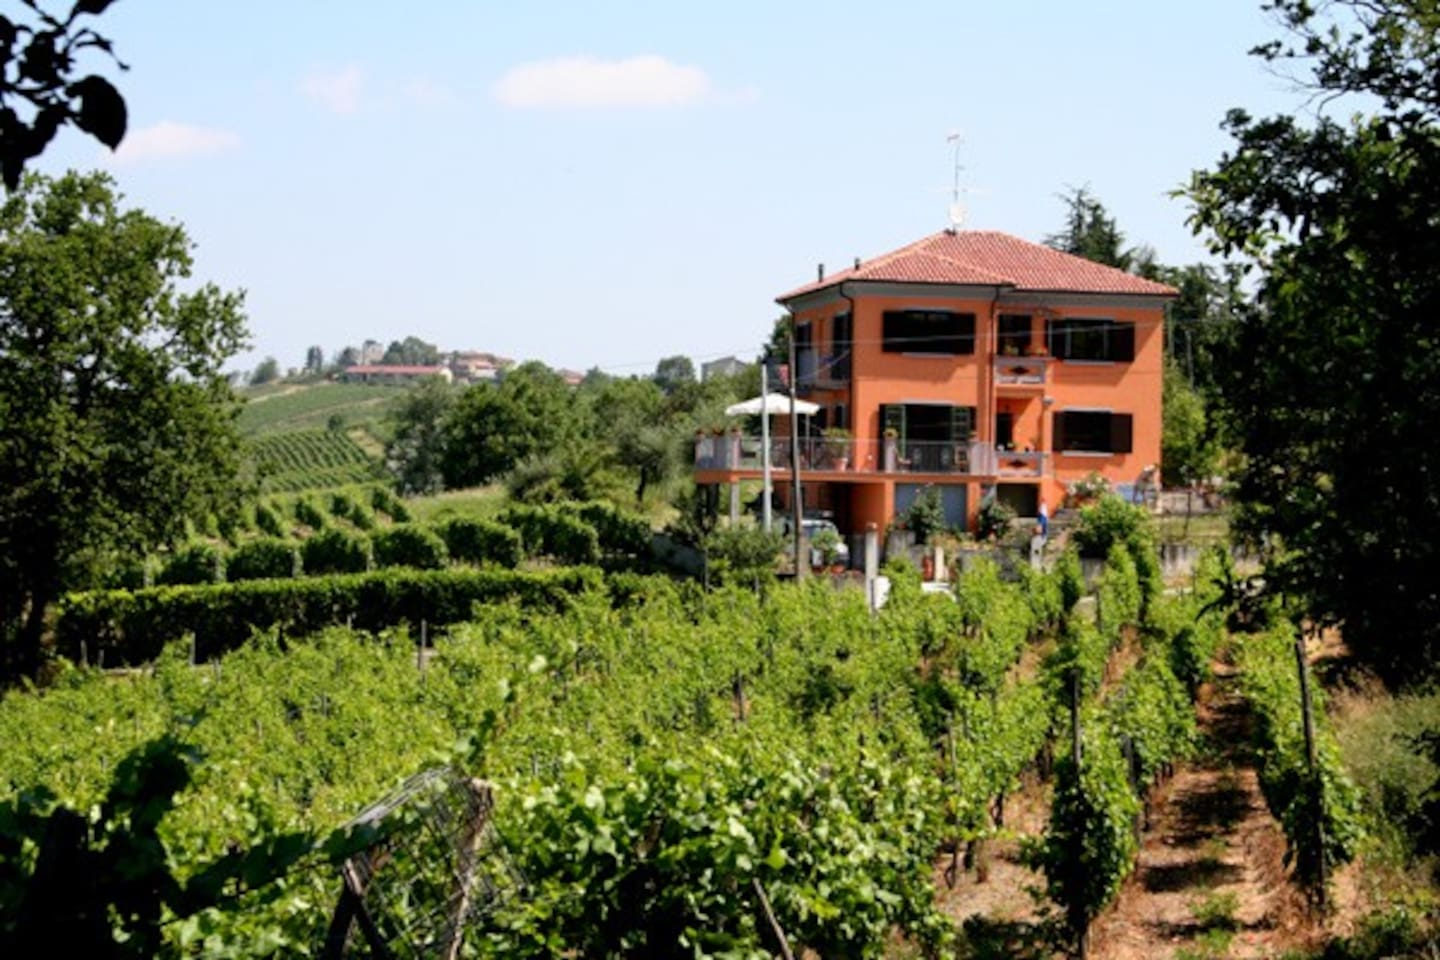 Bed Breakfast Italy Villa I Due Padroni